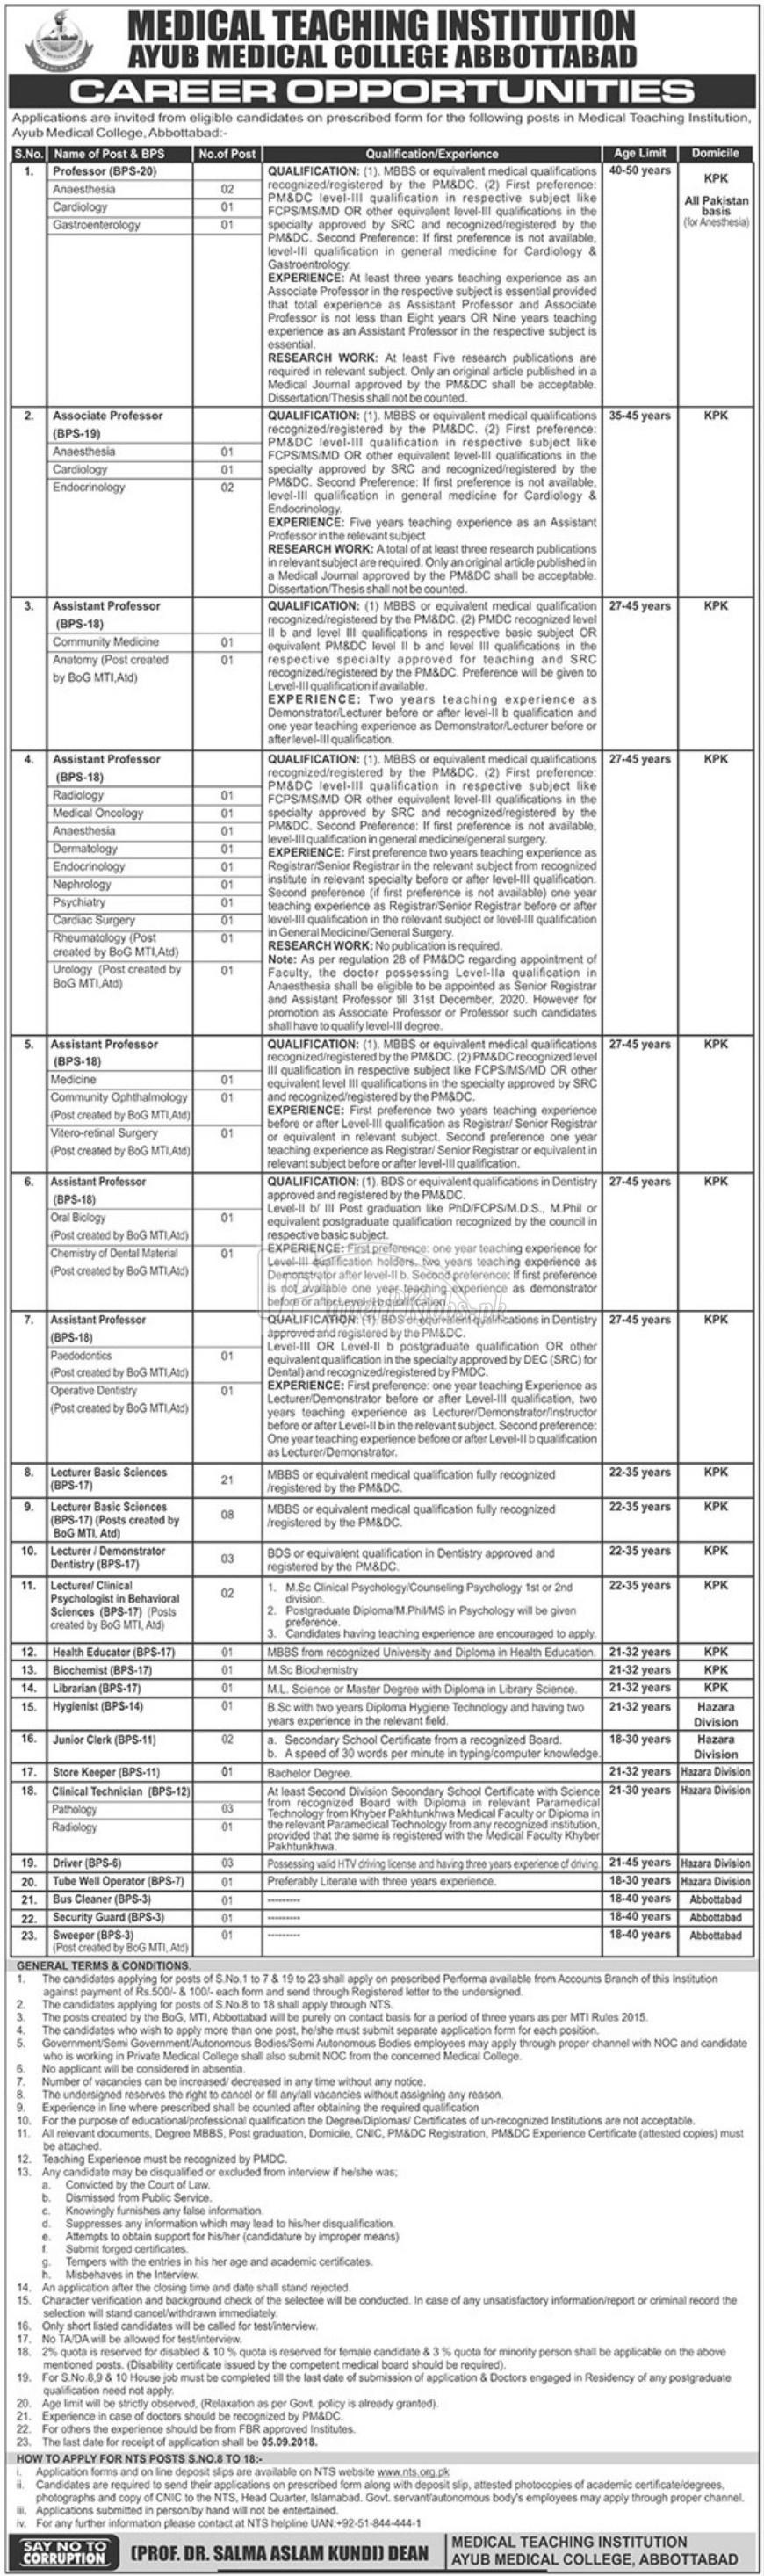 Ayub Medical College Abbottabad Jobs 2018